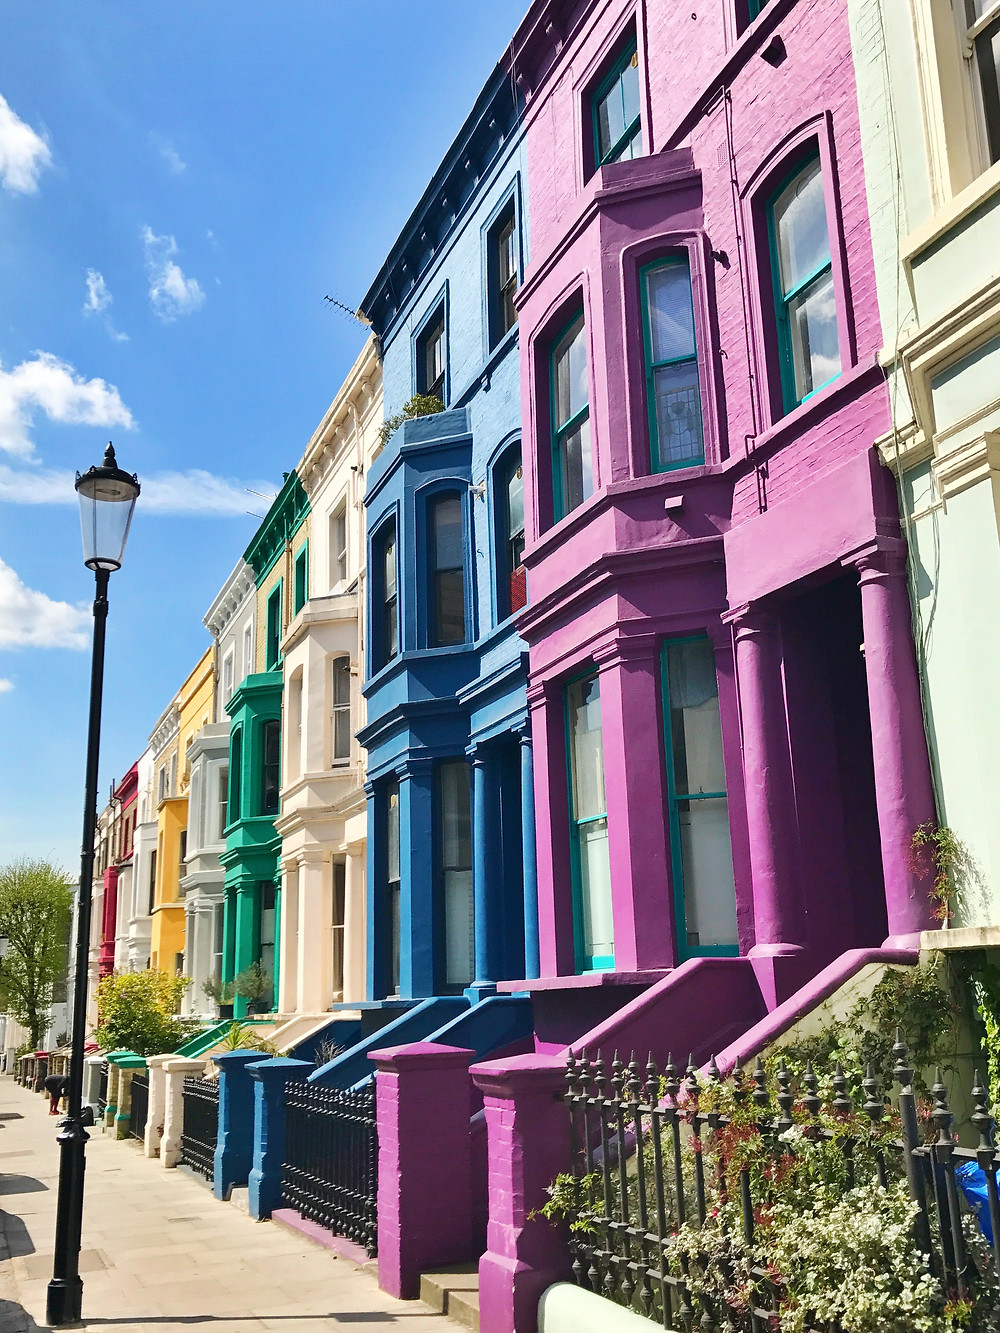 more colorful row houses in the Notting Hill area of London